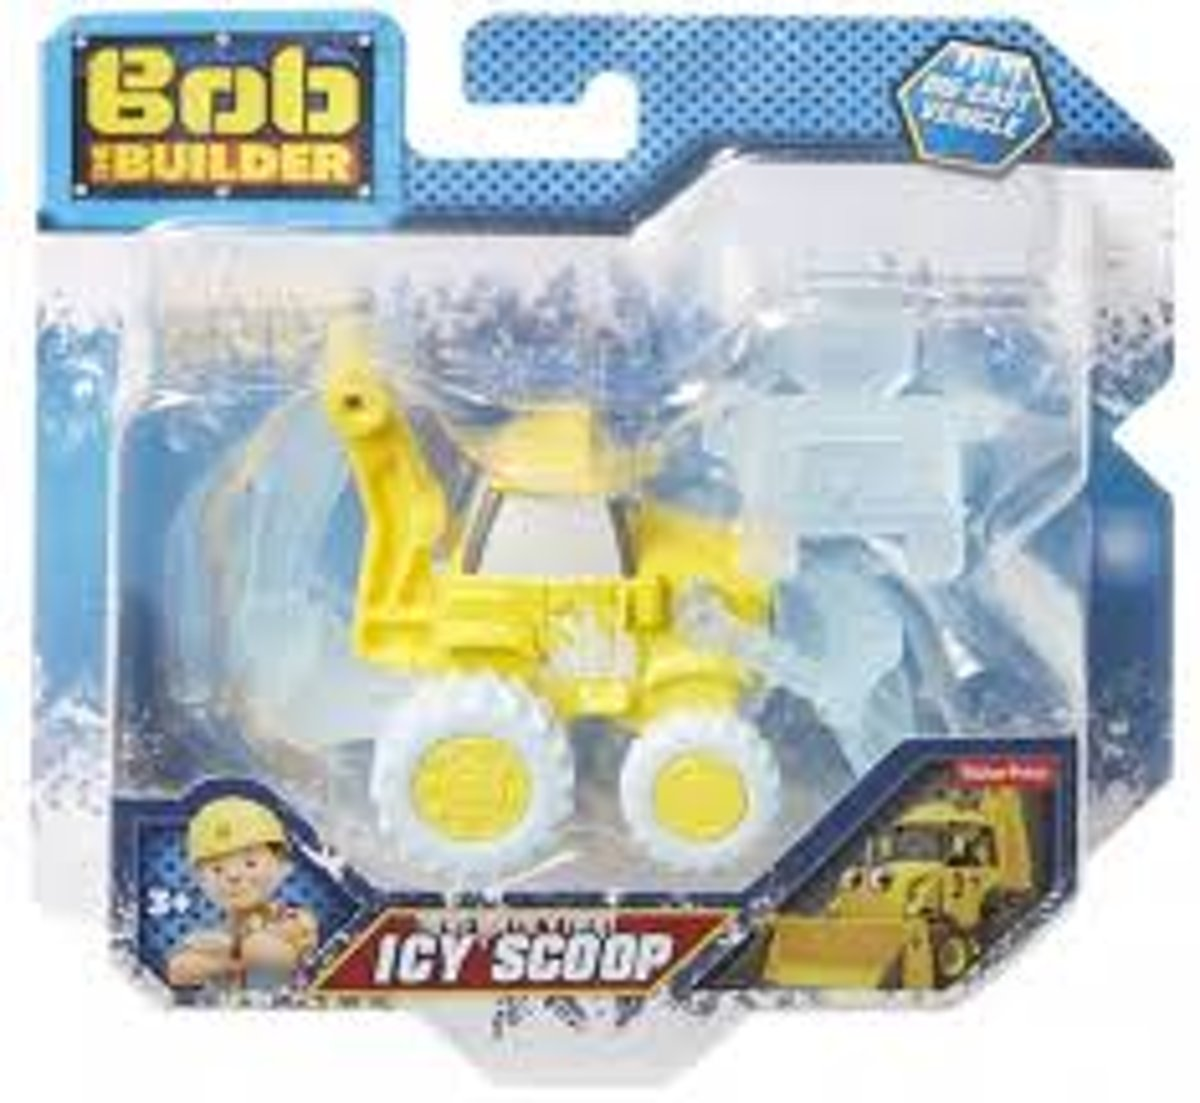 Bob De Bouwewr Icy Scoop